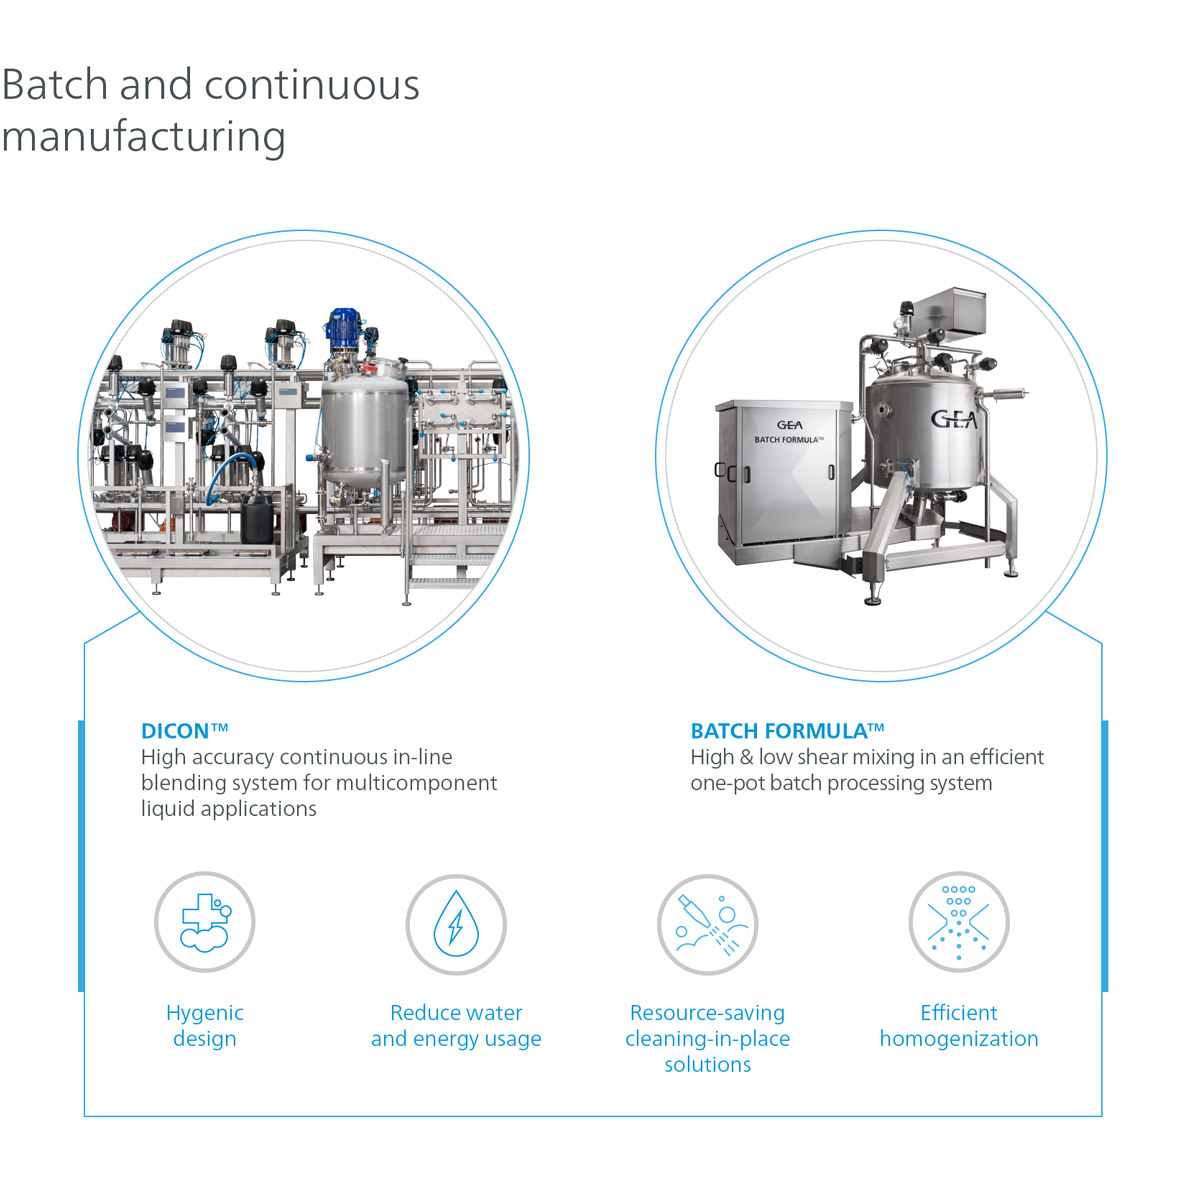 Batch and continuous manufacturing